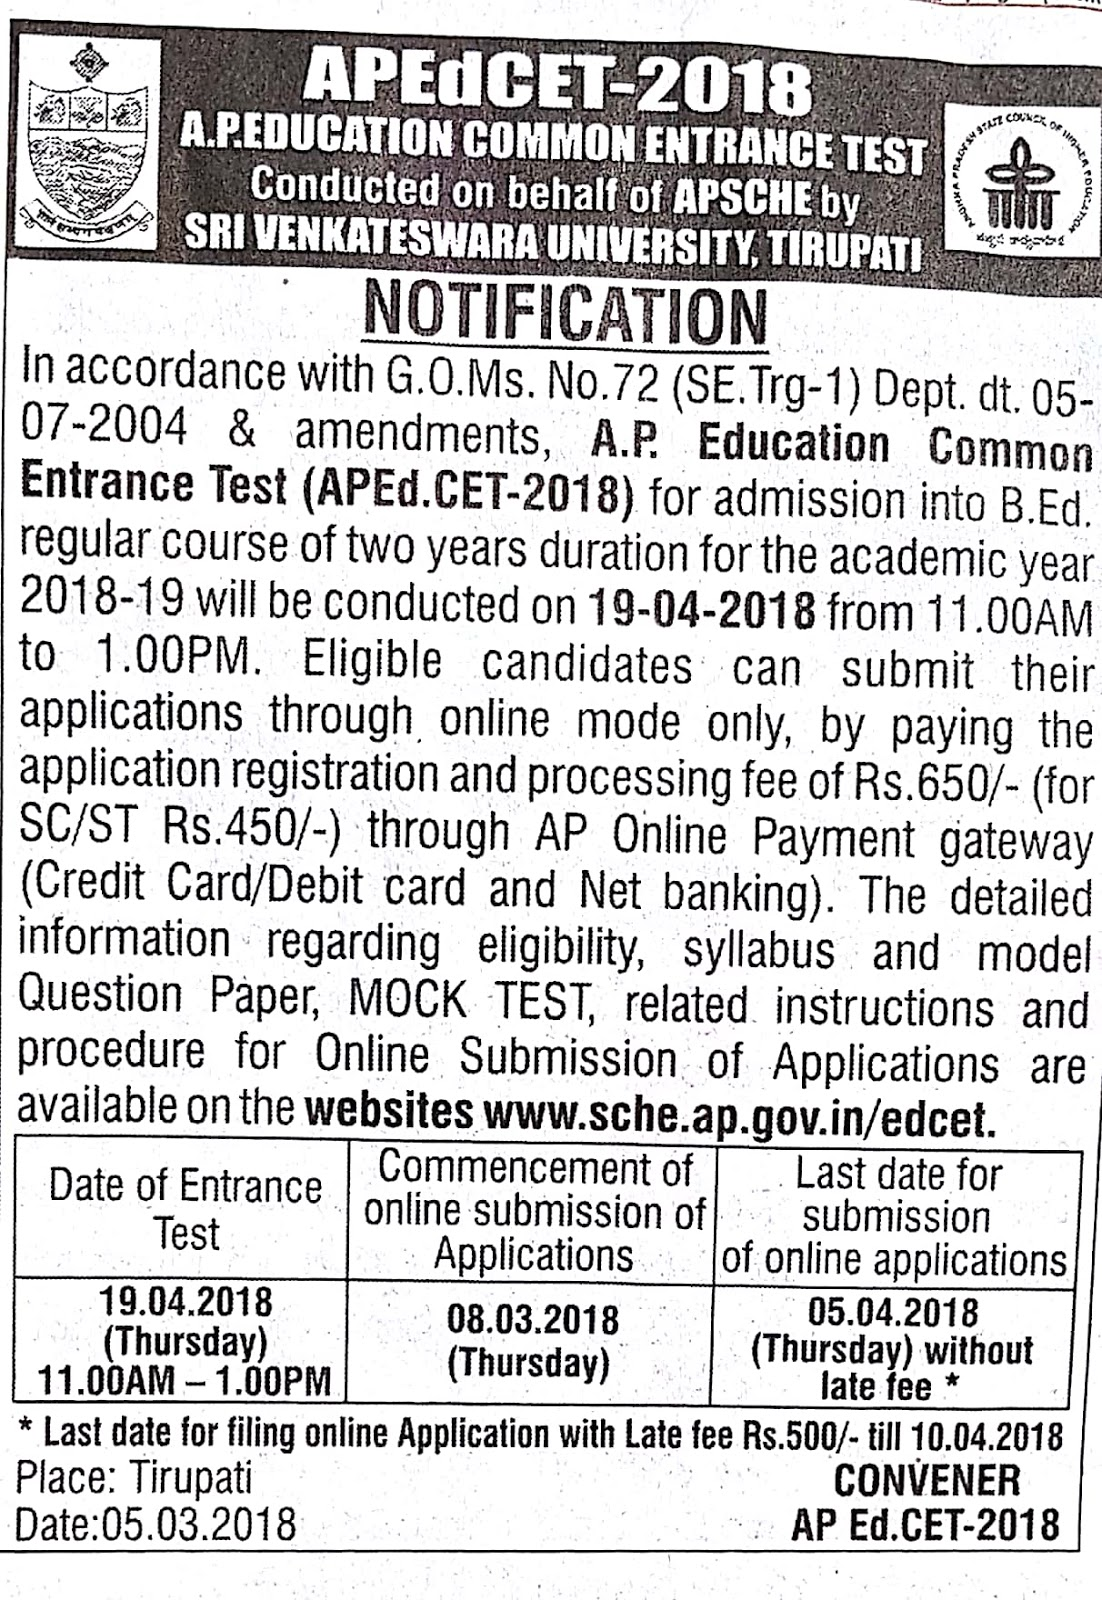 Andhra Pradesh Edcet Notification 2018